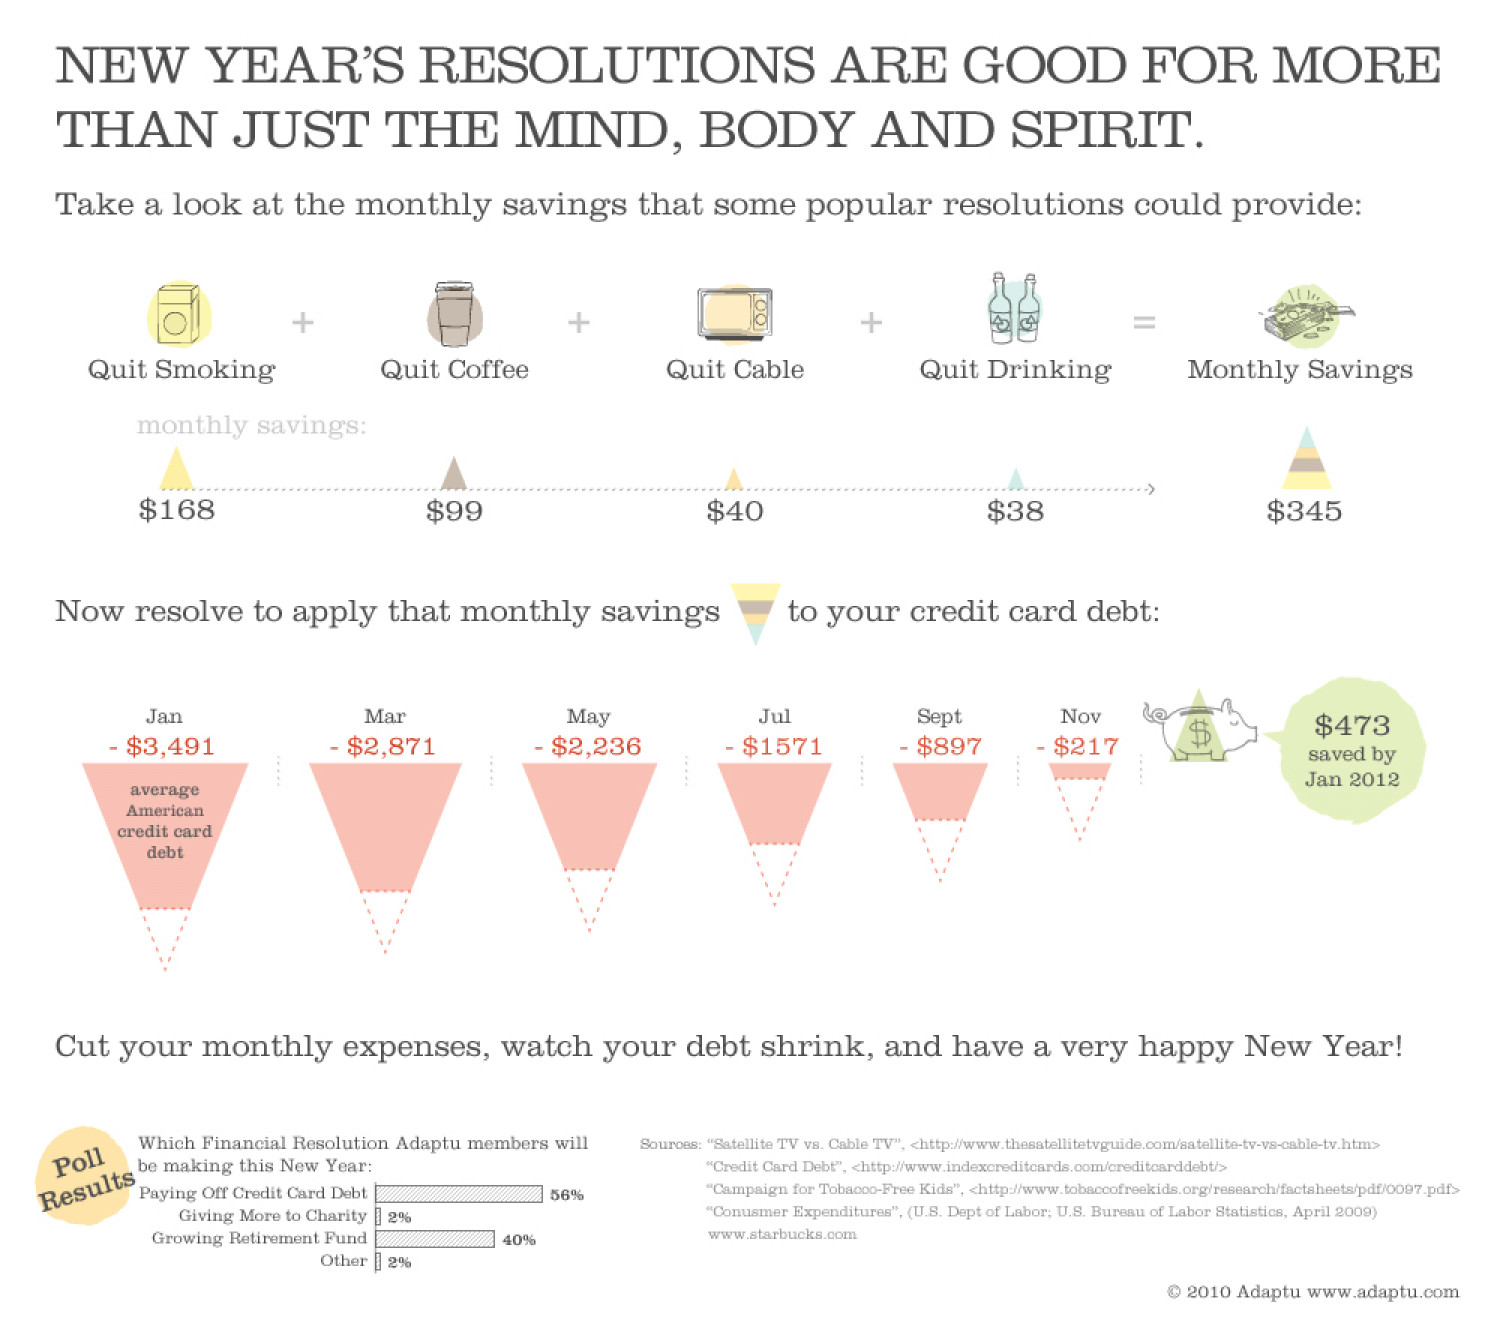 New Years Resolutions are Good for More than Just the Mind, Body and Spirit Infographic